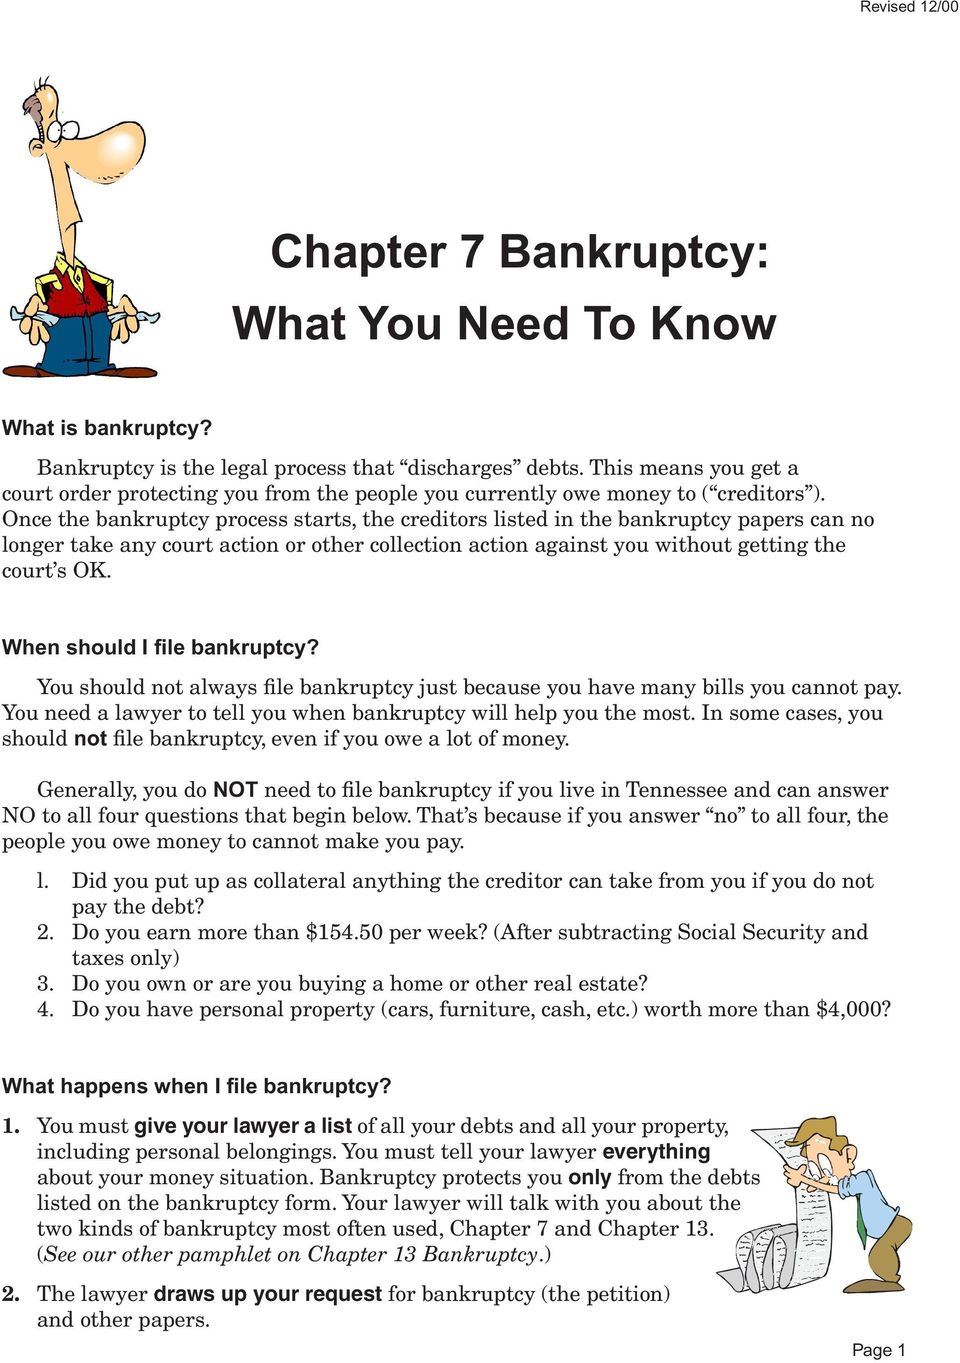 Once the bankruptcy process starts, the creditors listed in the bankruptcy papers can no longer take any court action or other collection action against you without getting the court s OK.